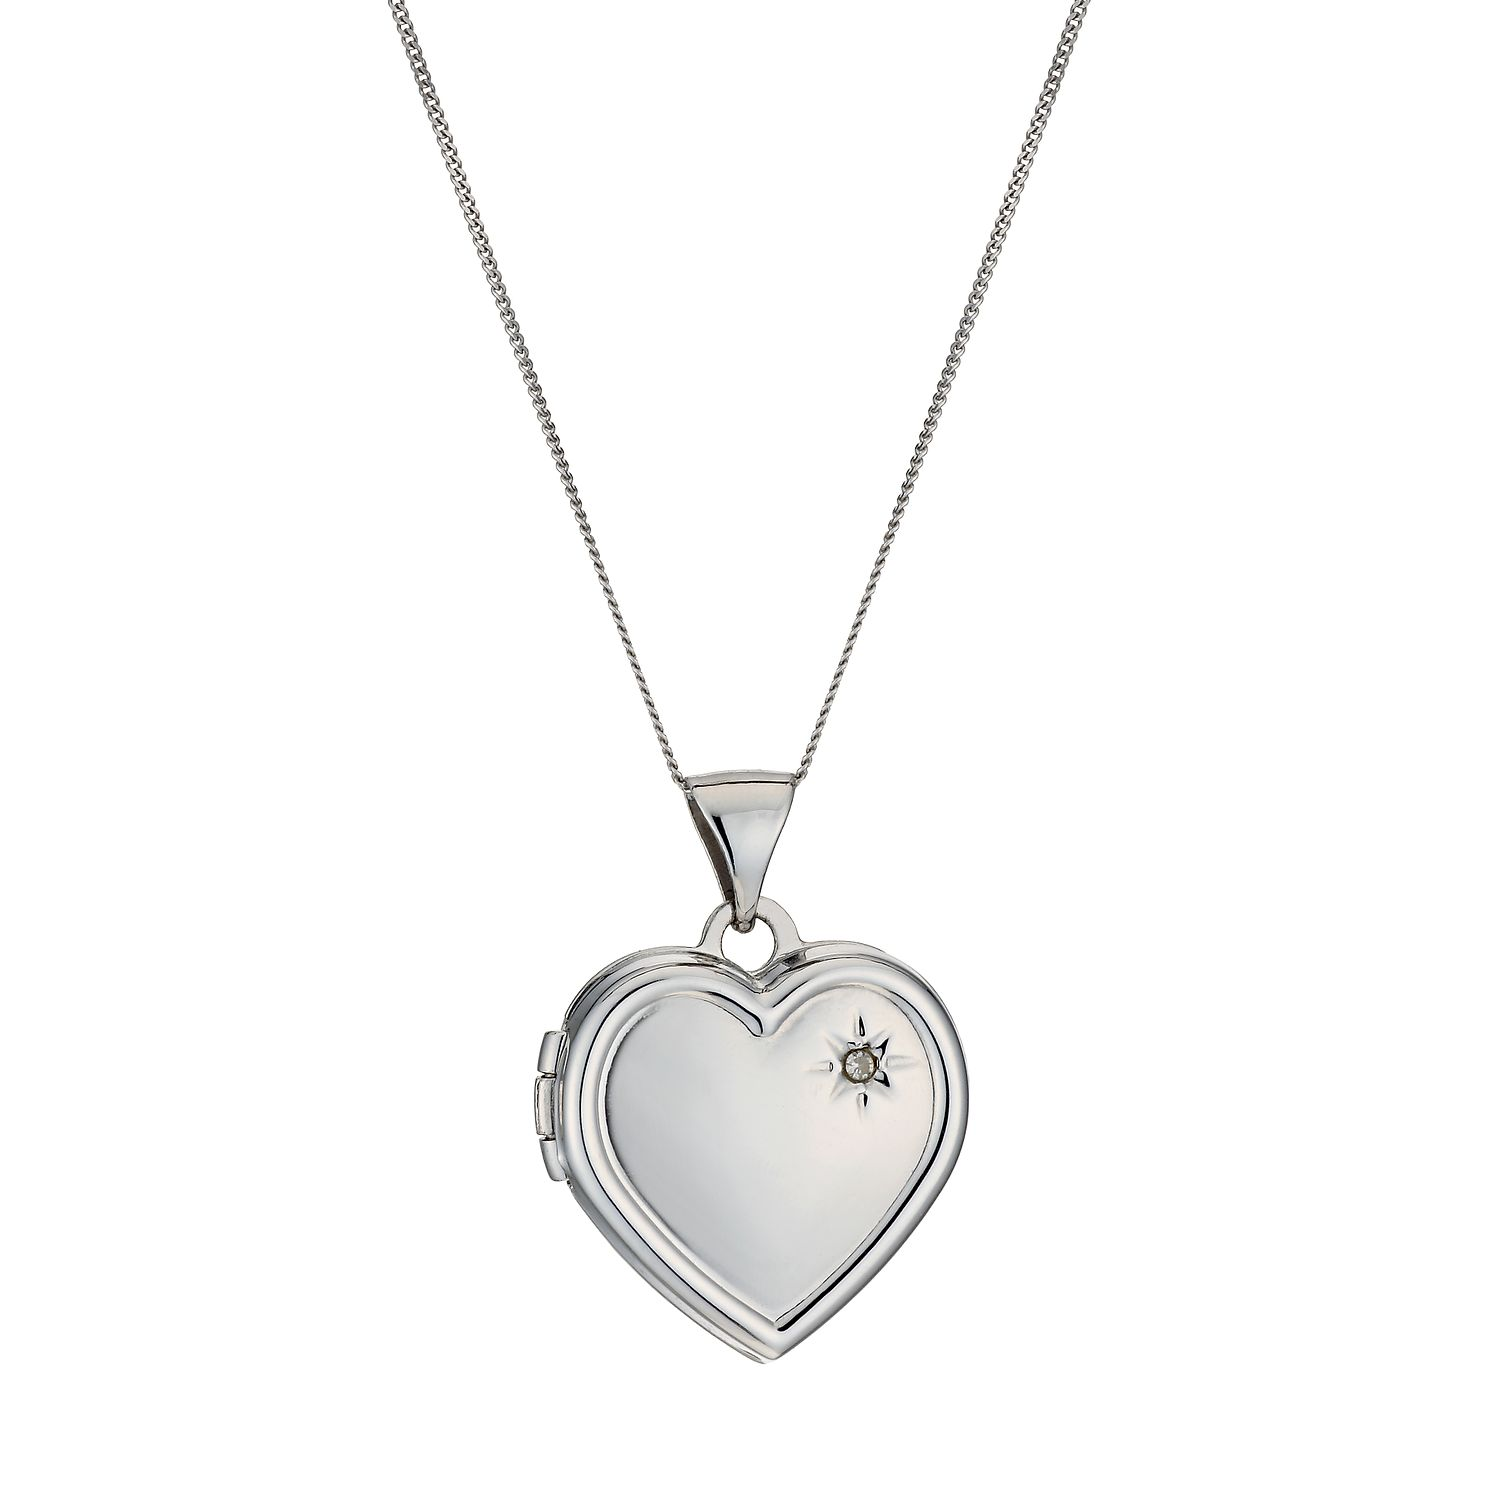 girlfriend necklaces lockets small pendant chain girl com friend dp breakable boyfriend and amazon with sterling boy two silver part heart